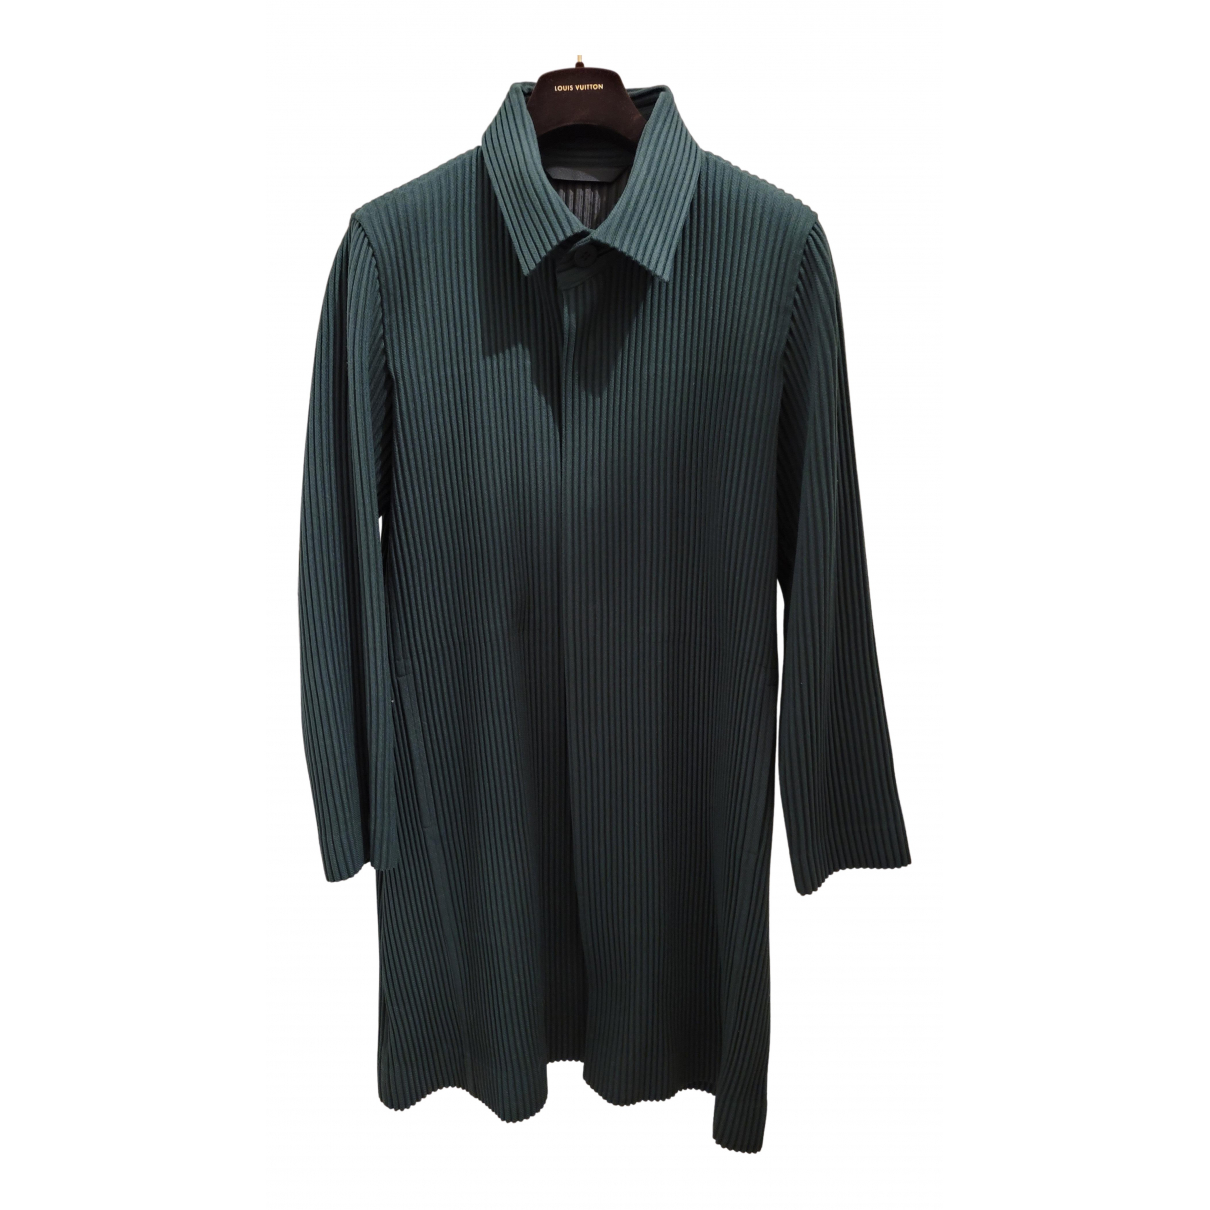 Issey Miyake - Manteau   pour homme - vert